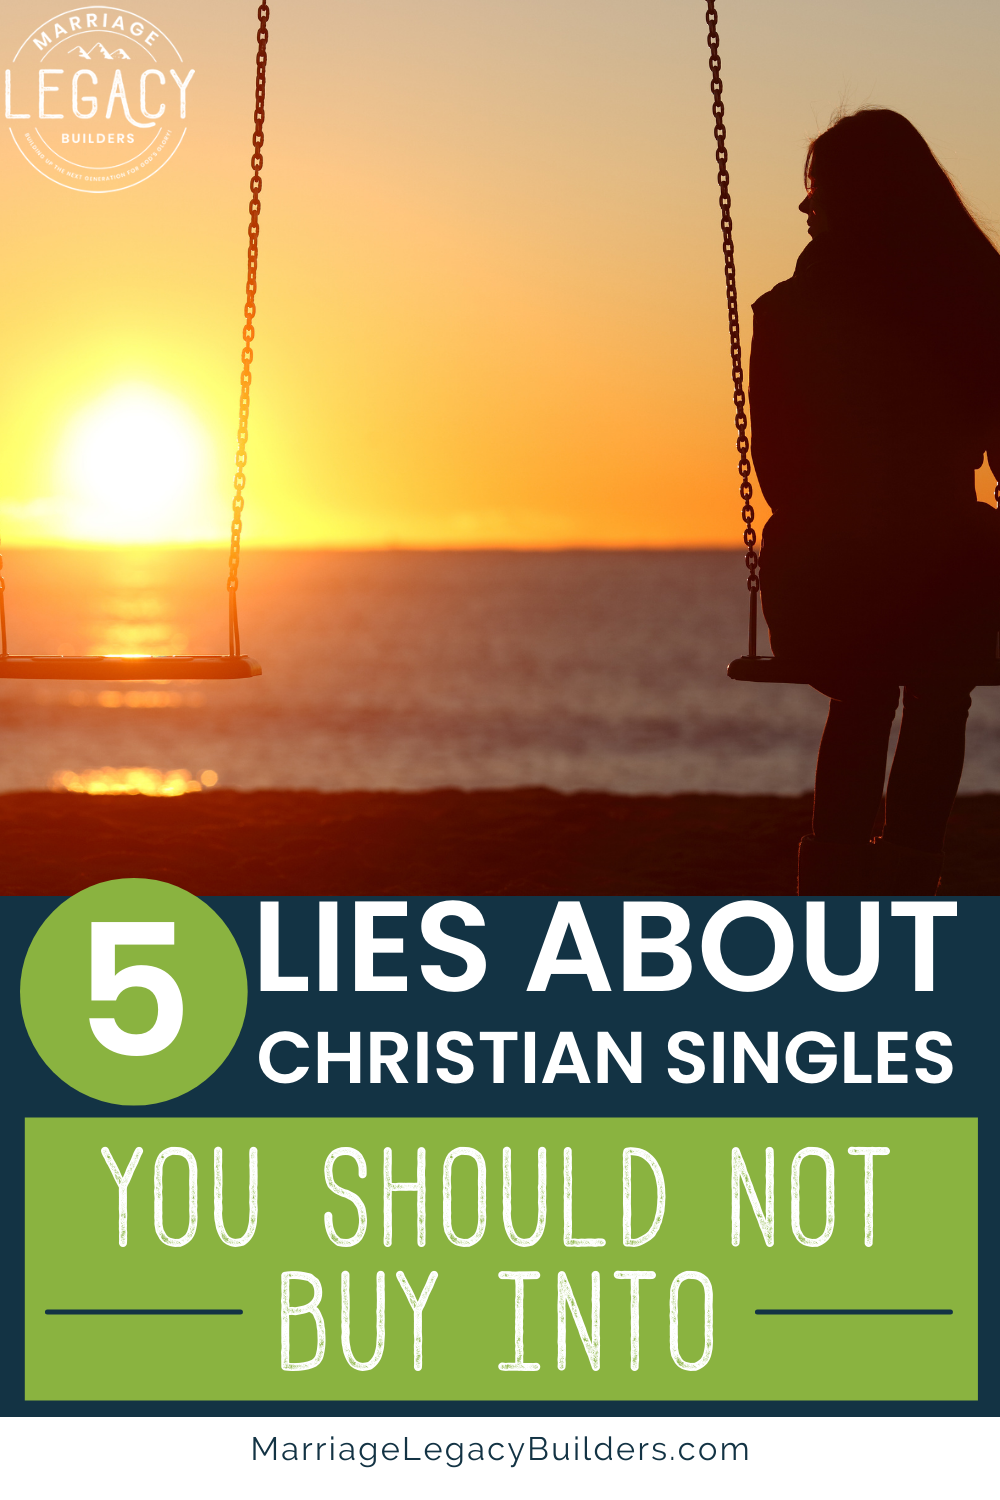 5 Lies About Christian Singles (You Should Not Buy Into)